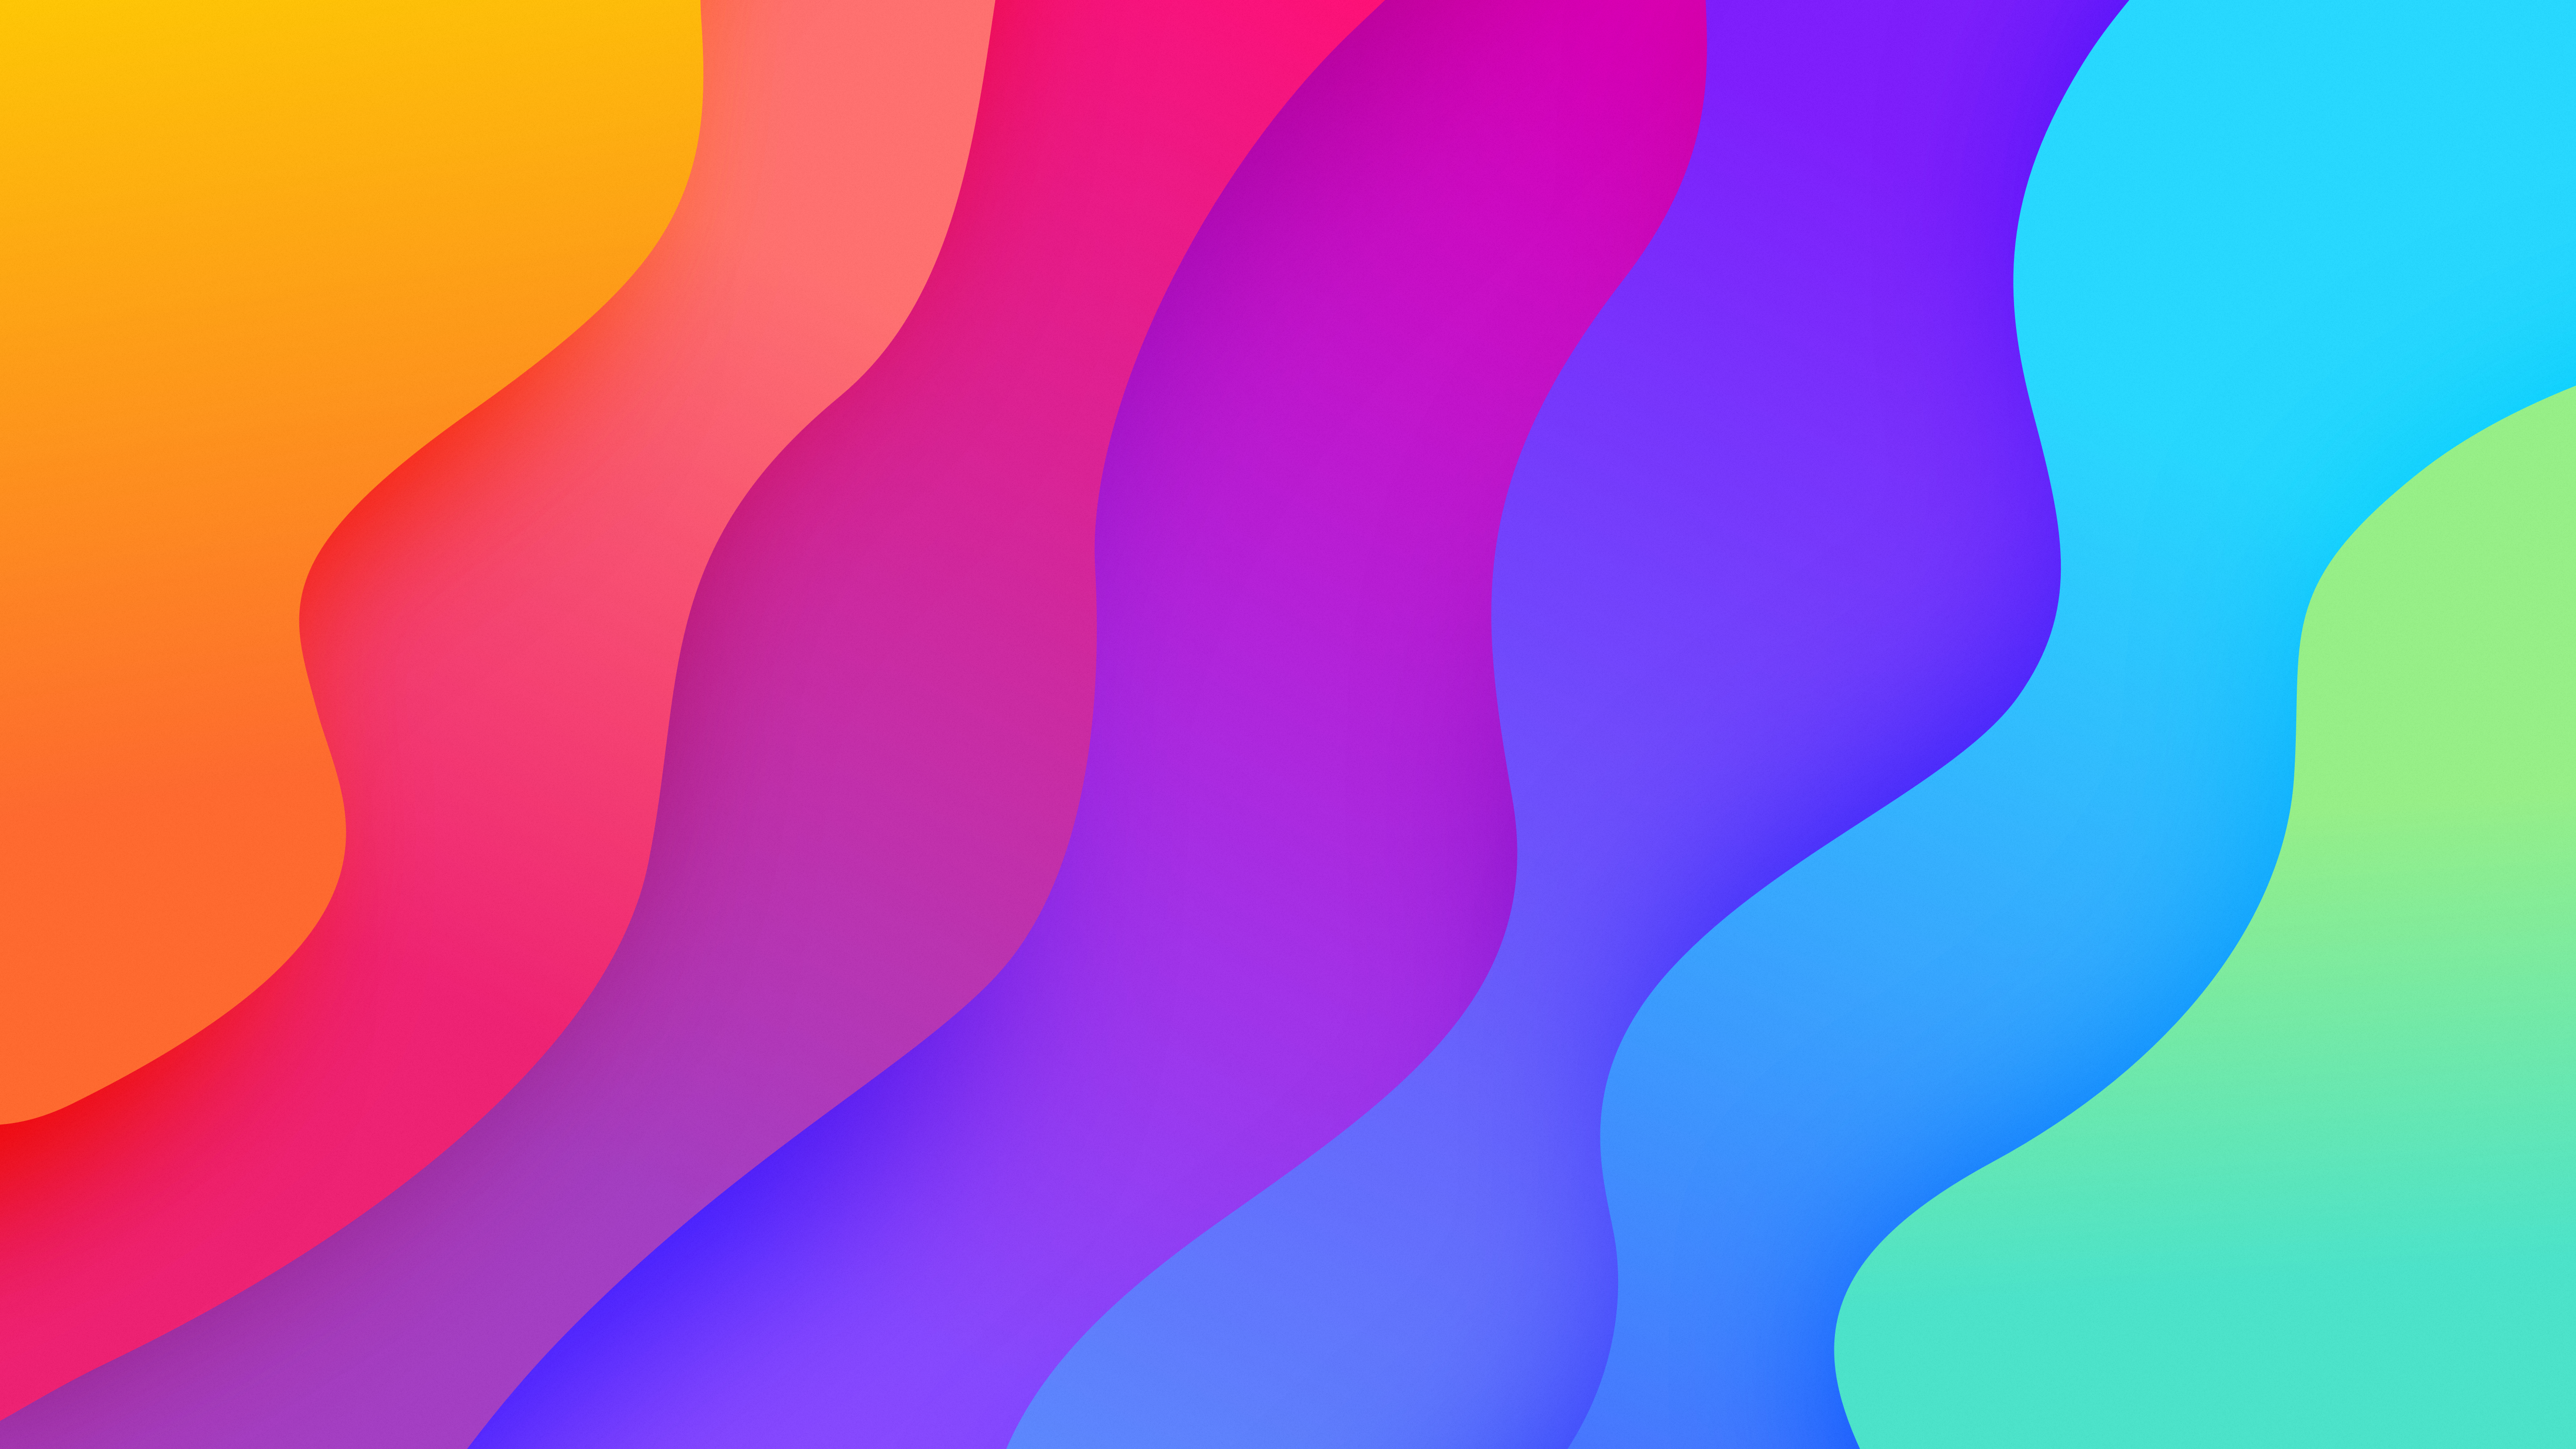 Wavey A Set Of Vibrant Wallpapers